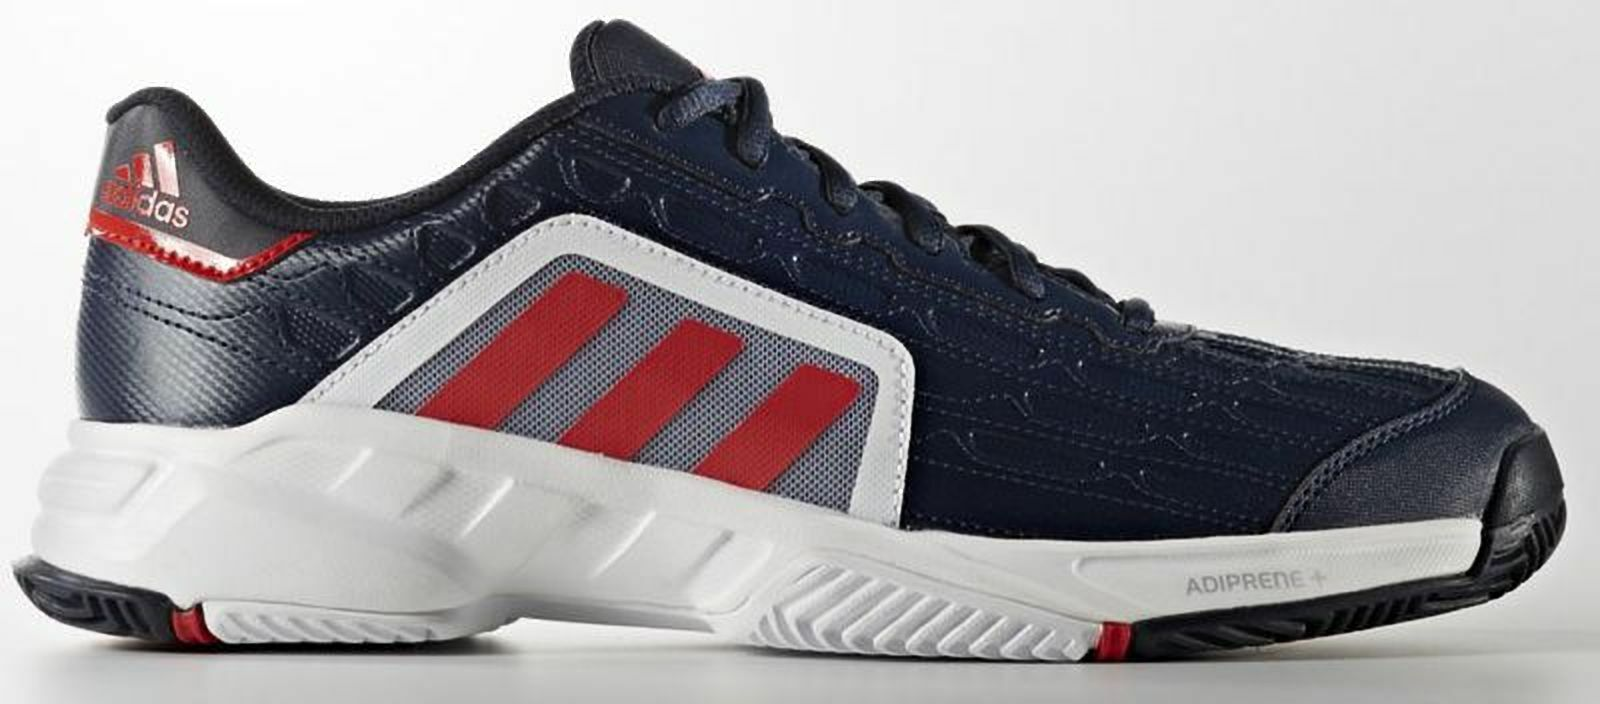 ADIDAS mens barricade court 2 tennis trainers shoes  7 10 10.5 11 bluee red new